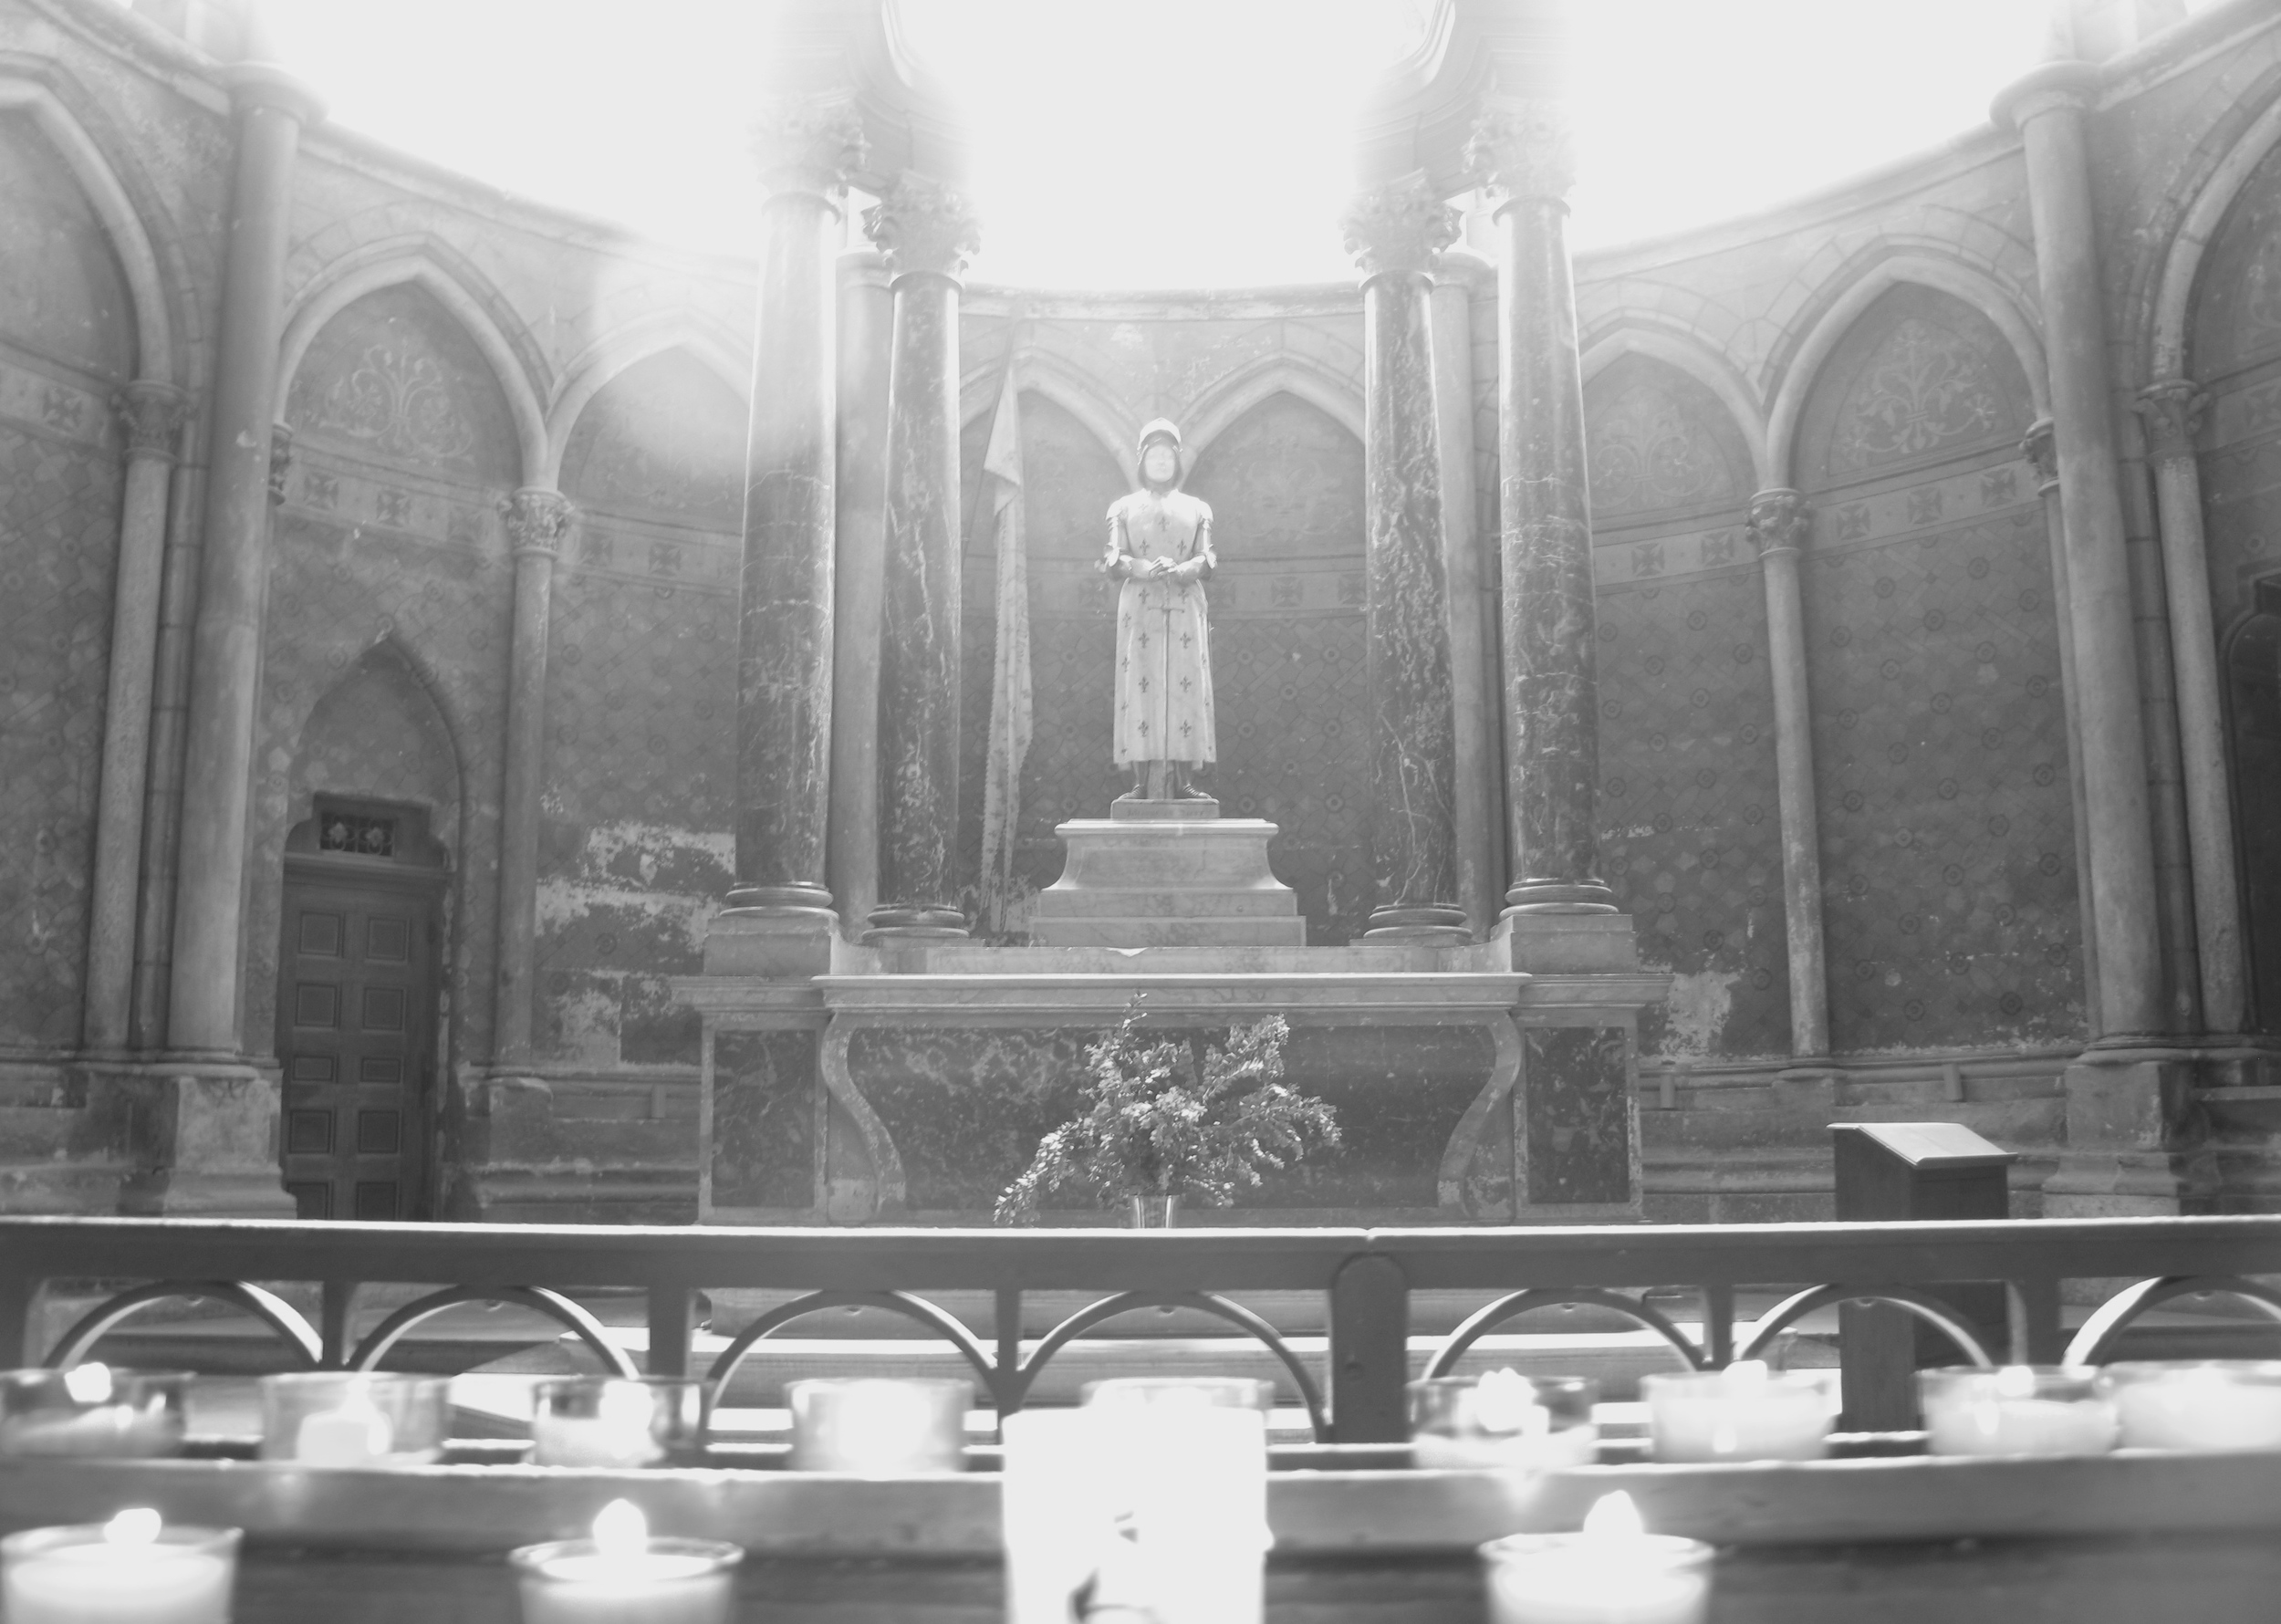 Statue of Joan of Arc in a small chapel at Reims cathedral